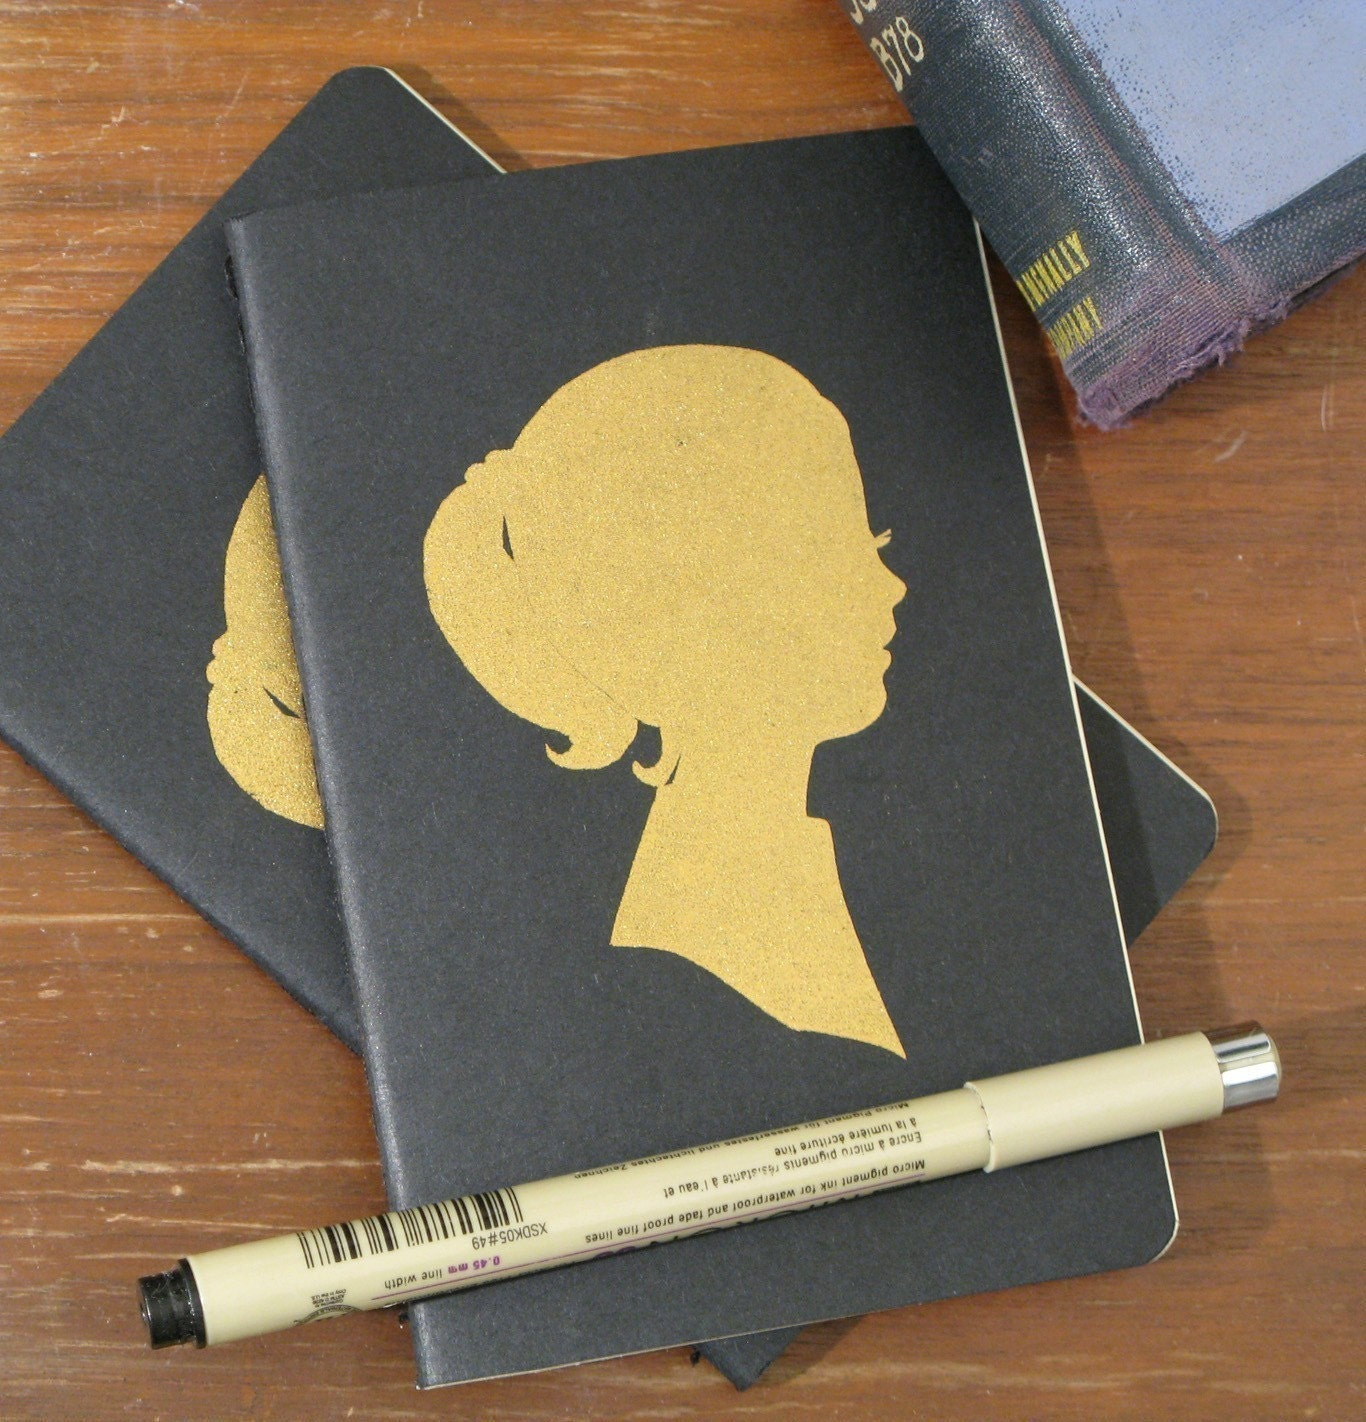 golden girl, screenprinted moleskine cahiers notebook (ruled pages)